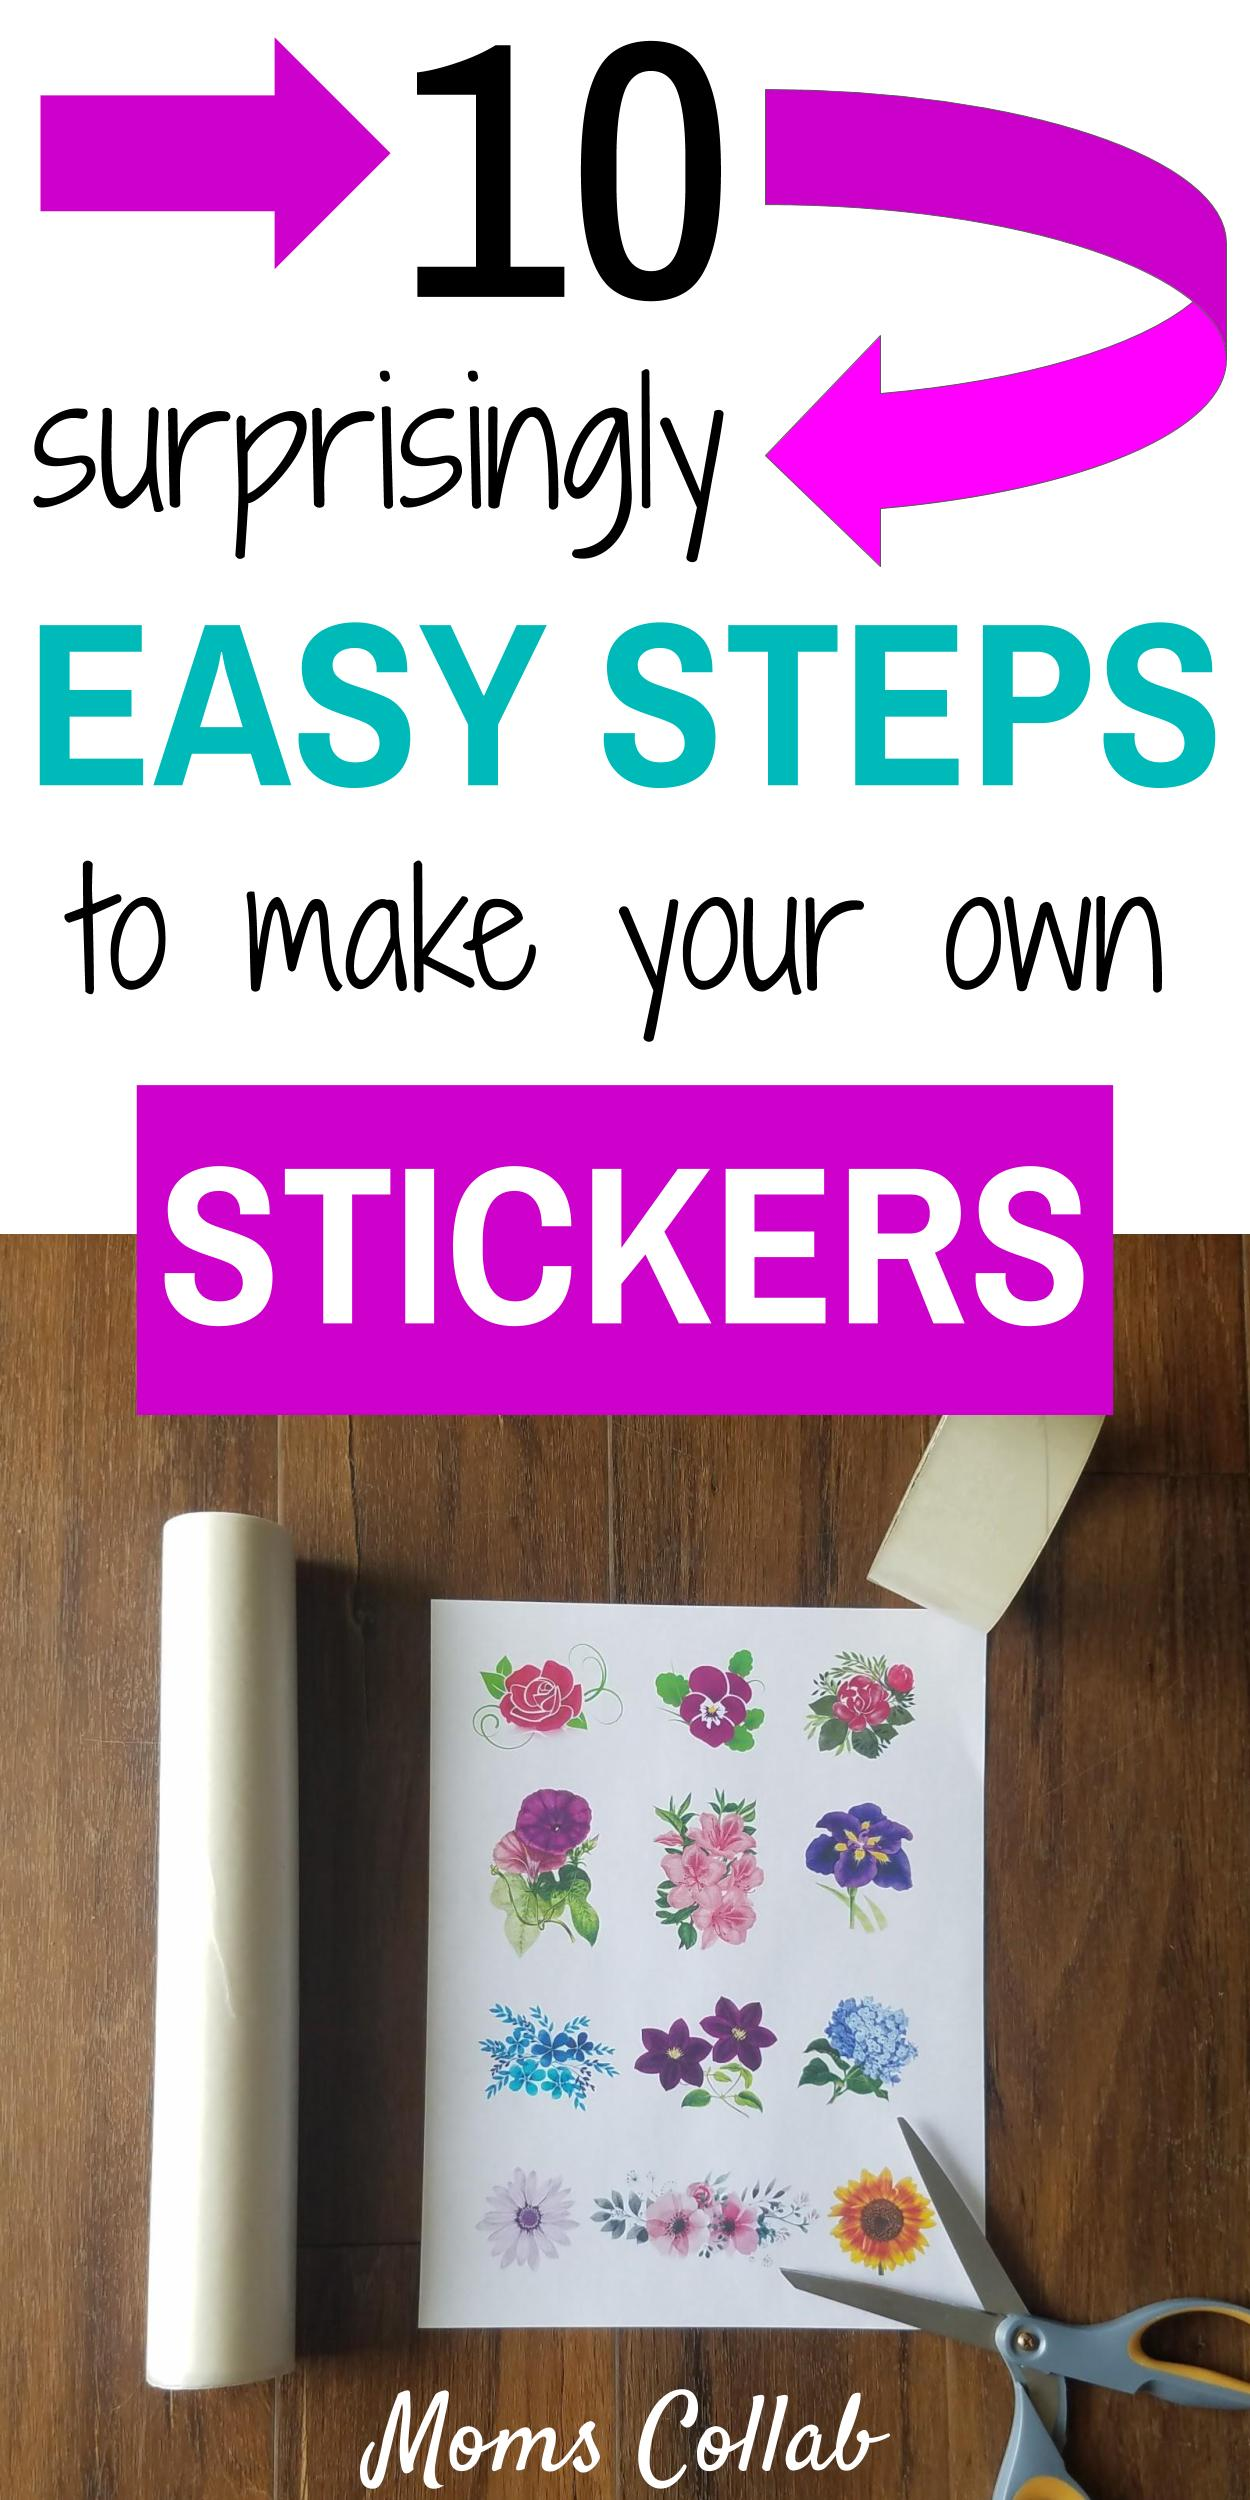 Easy Steps to Make Your Own Stickers